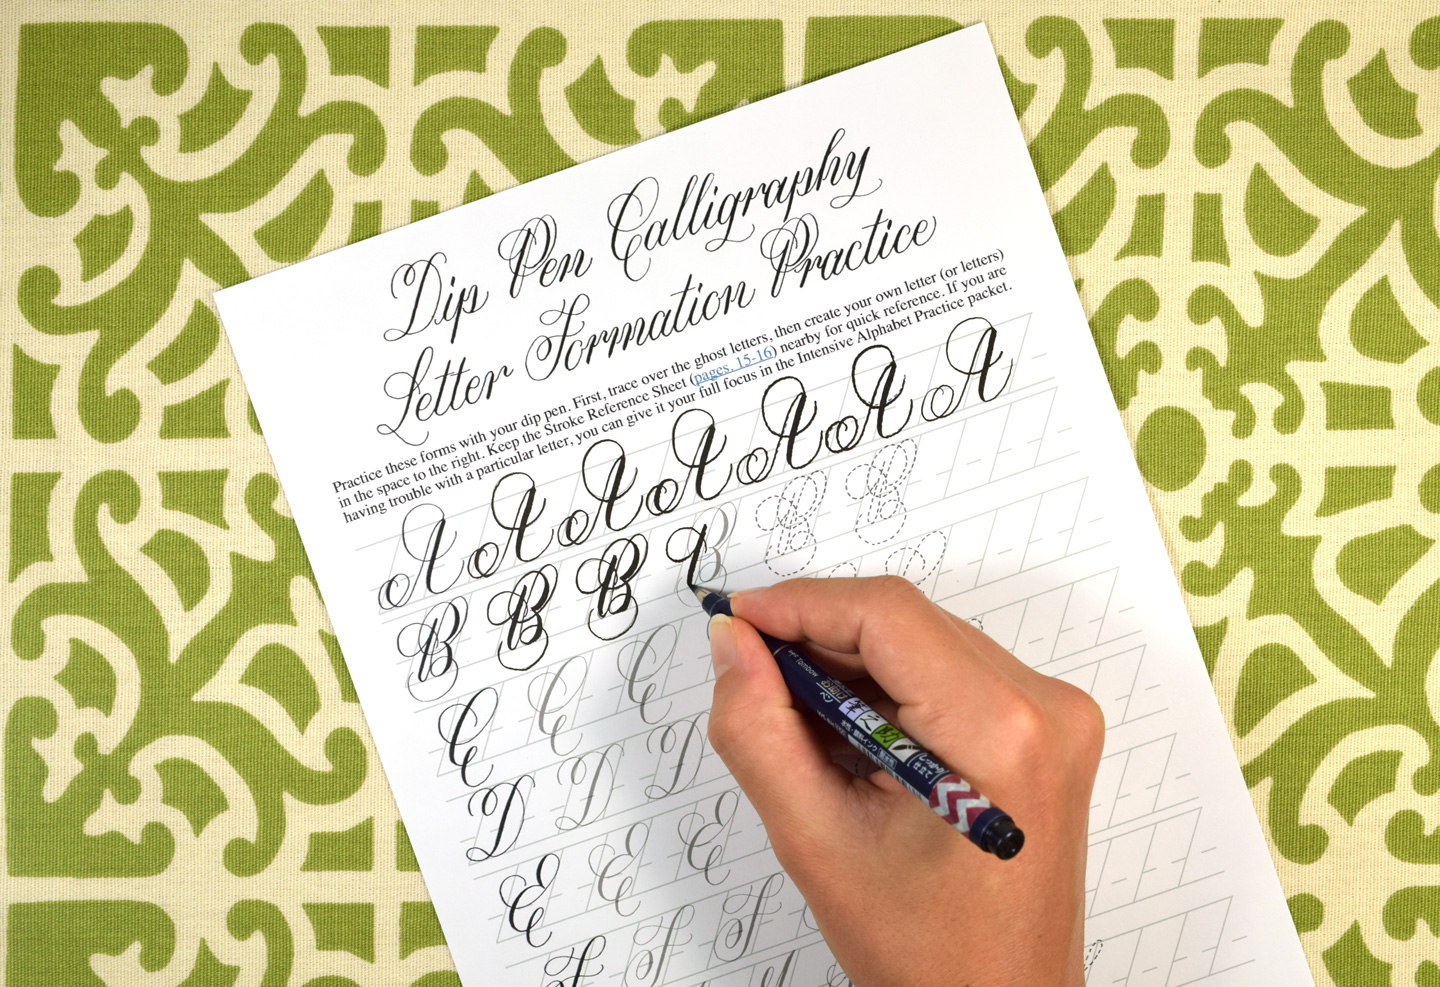 Using Brush Pens for Calligraphy + A Collection of Worksheets   The Postman's Knock